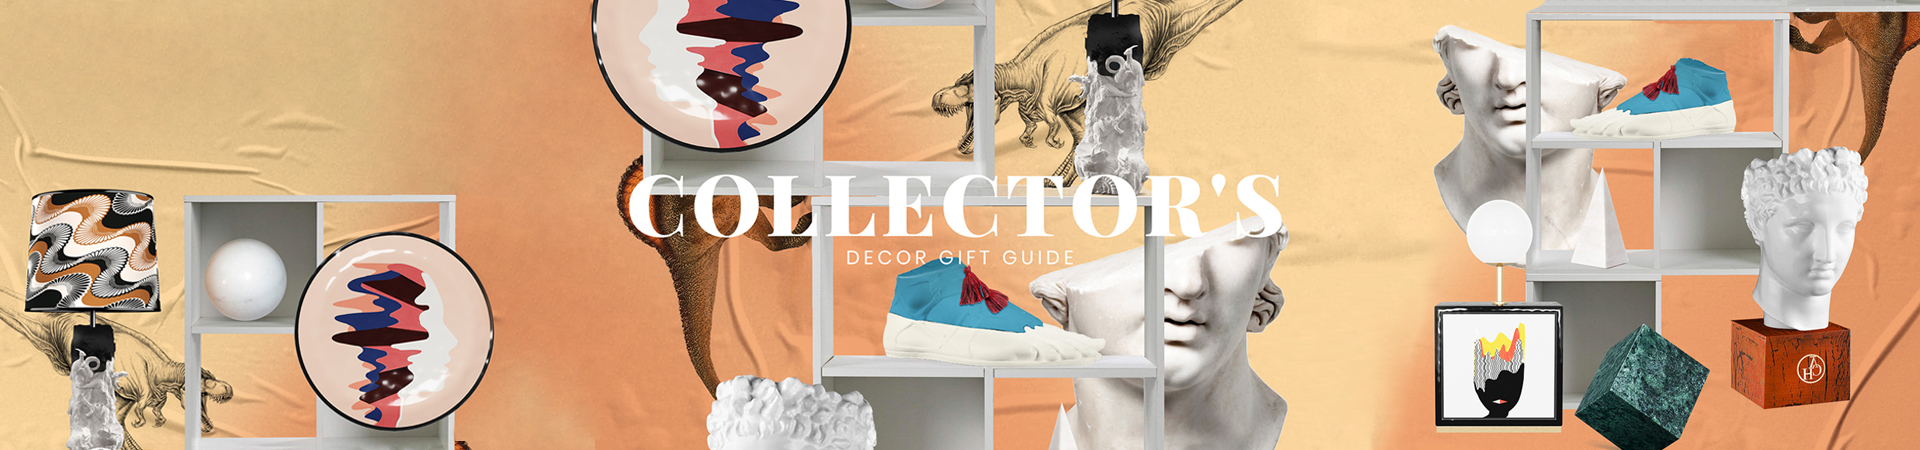 Collector's - decor gift guide